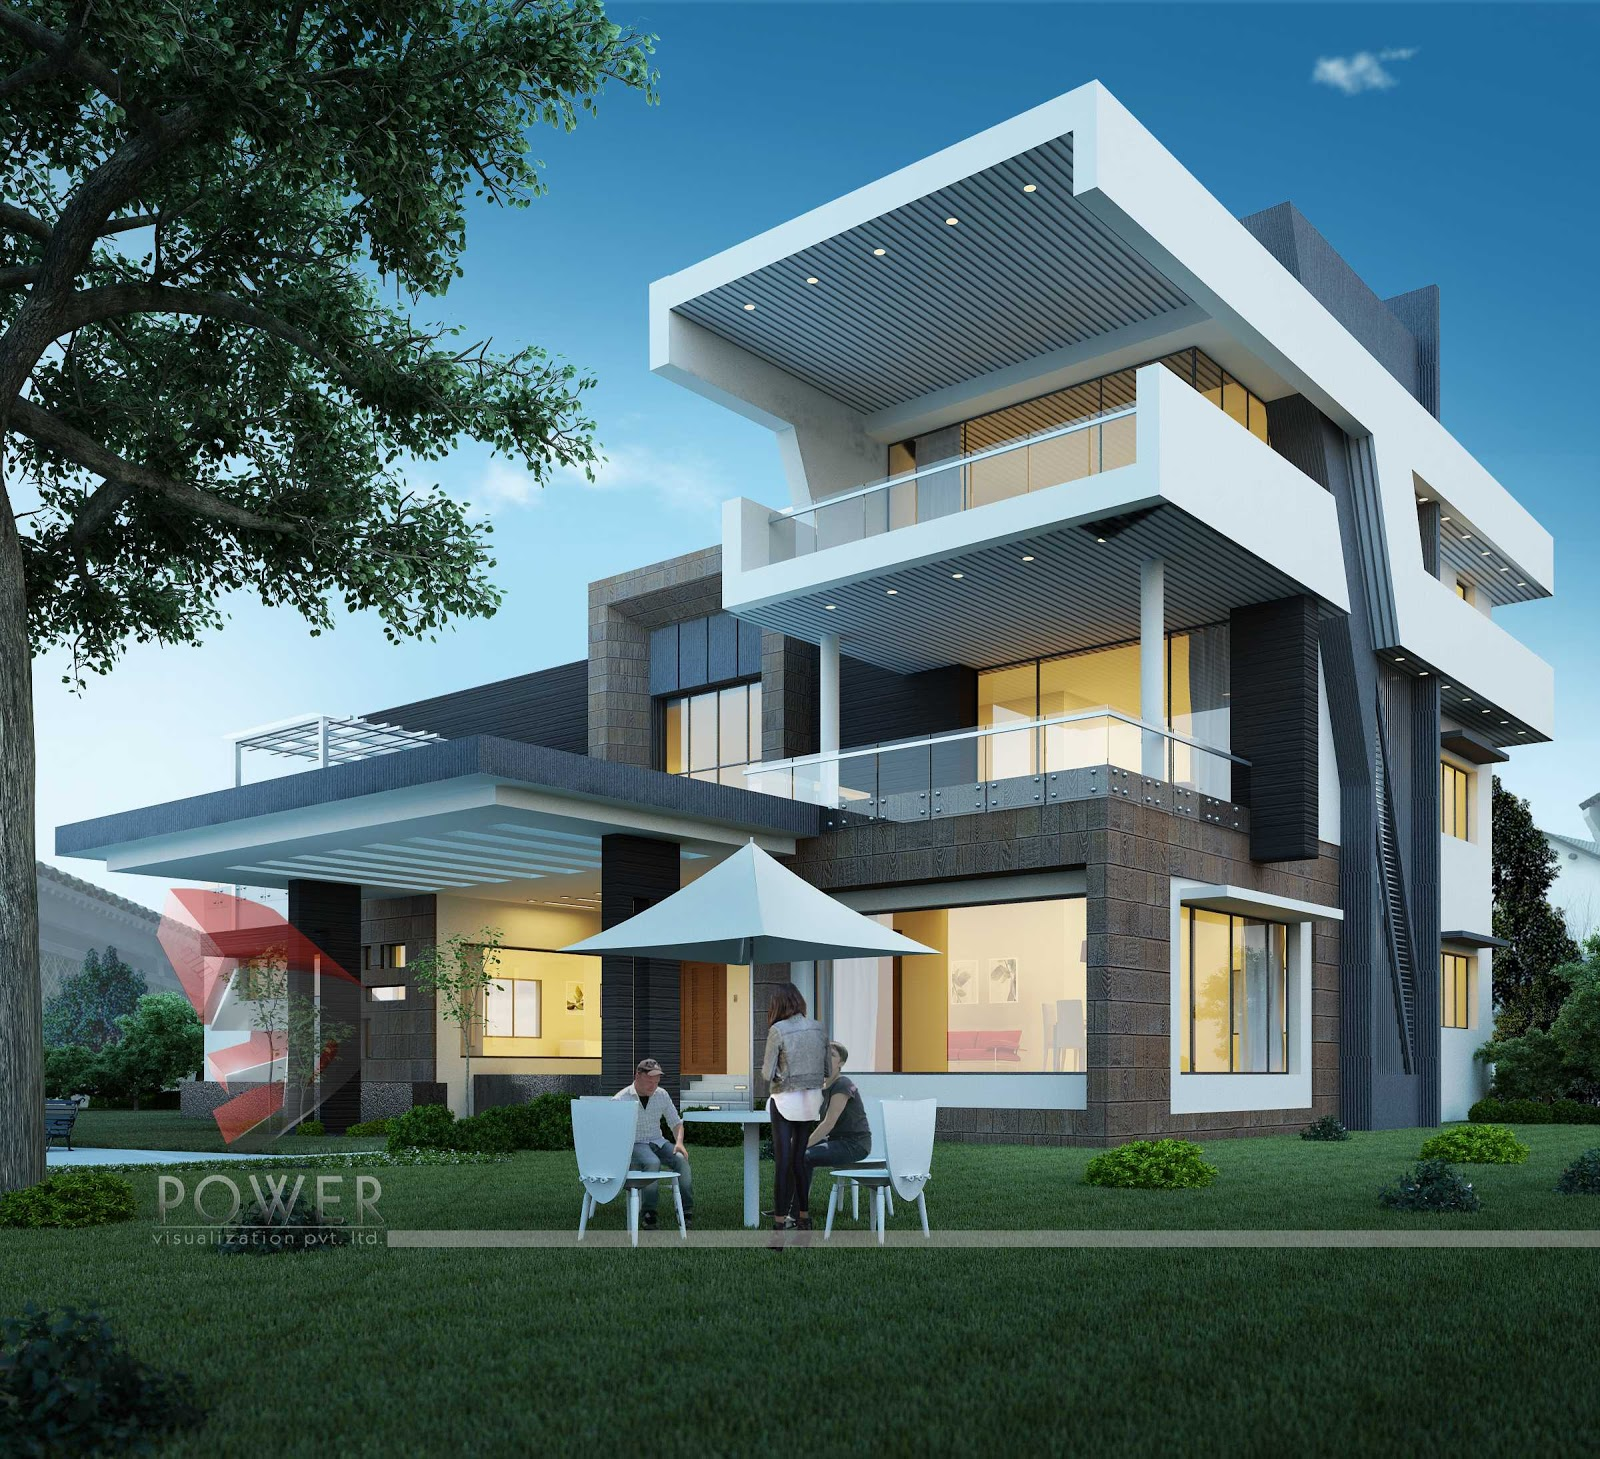 Ultra modern home designs home designs october 2012 for Modern home blueprints